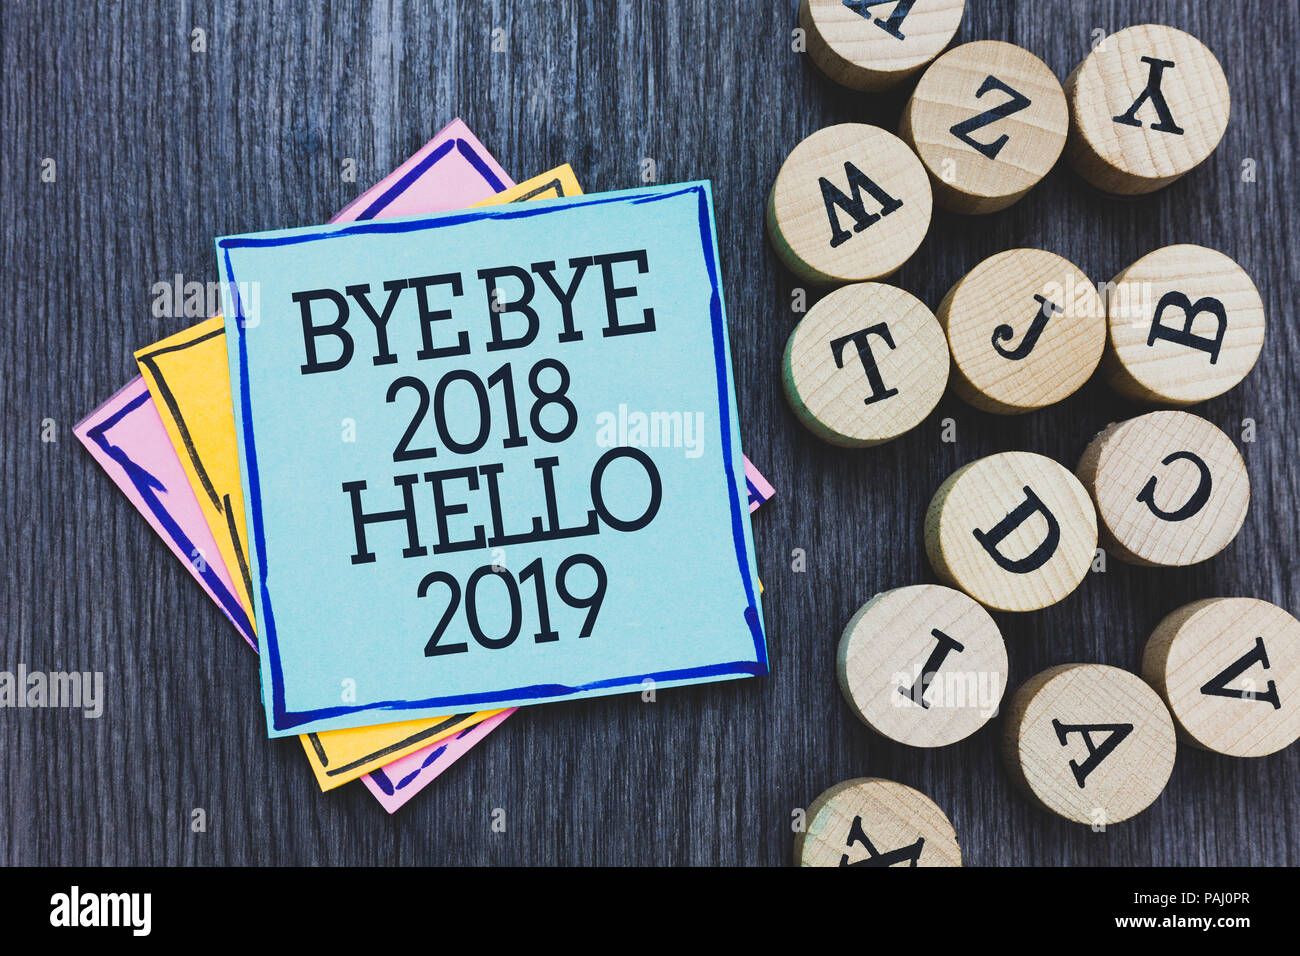 Image result for 2018 BYE